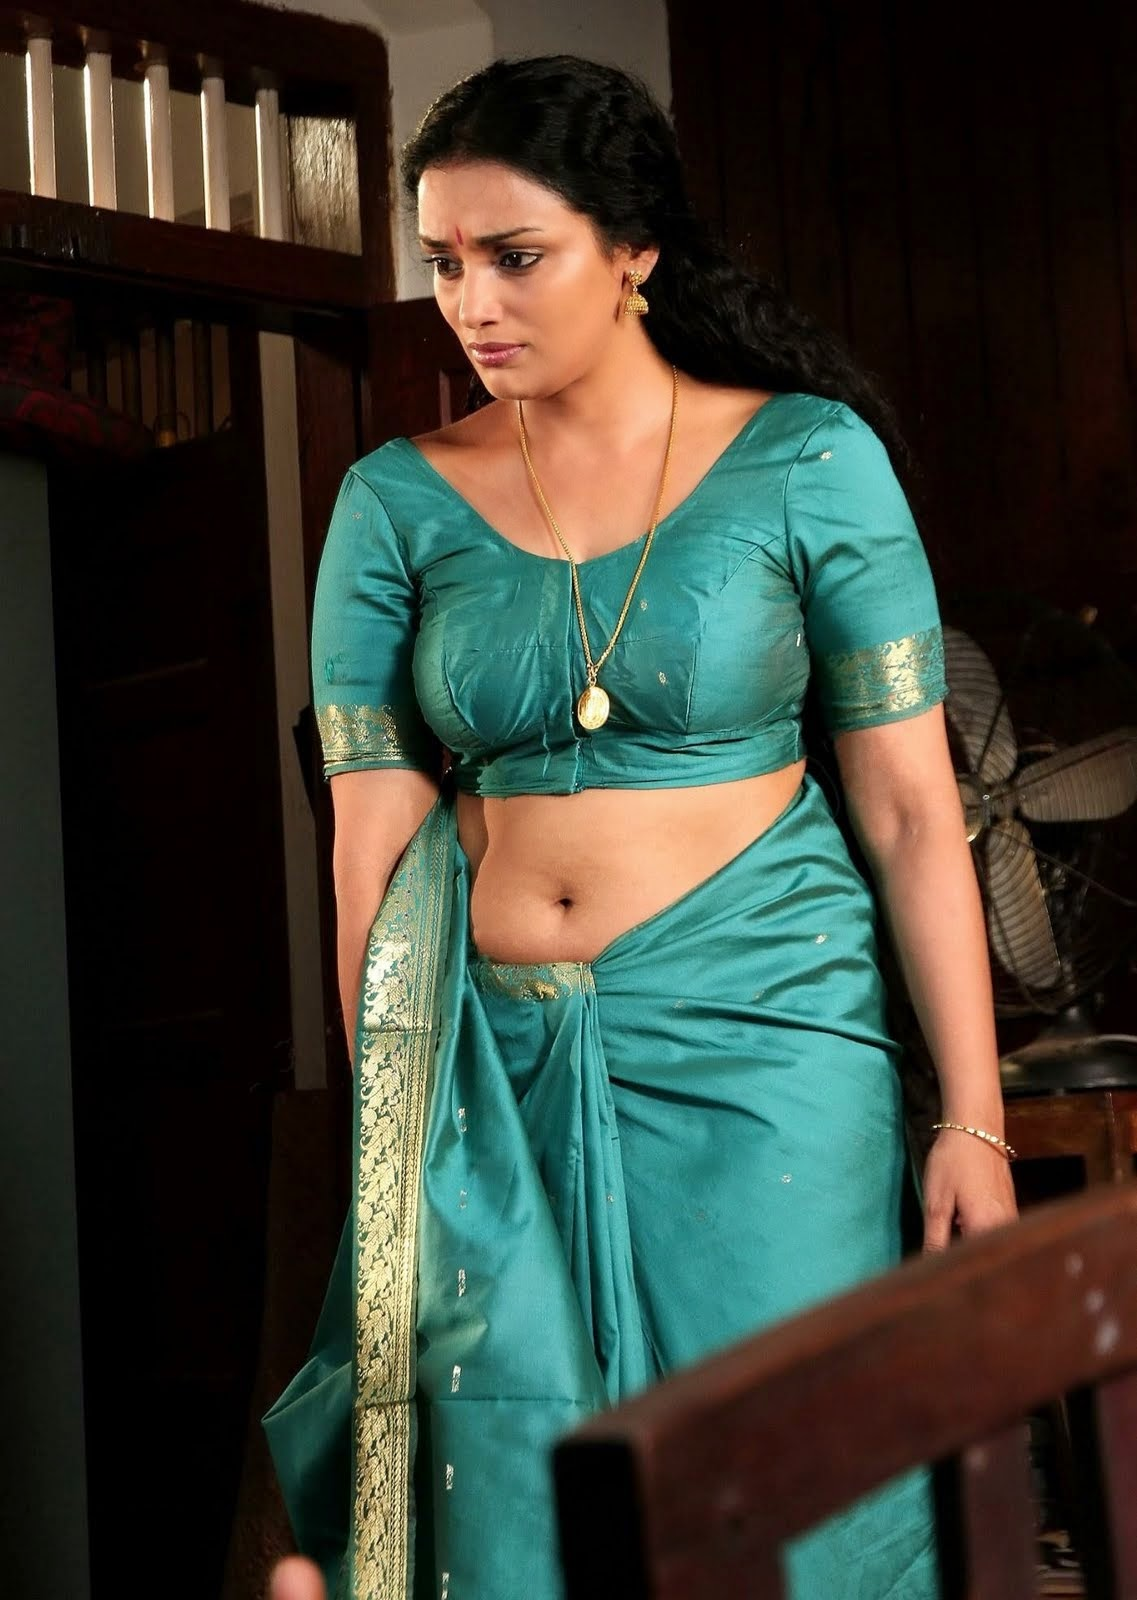 malayalam nude women high quality images